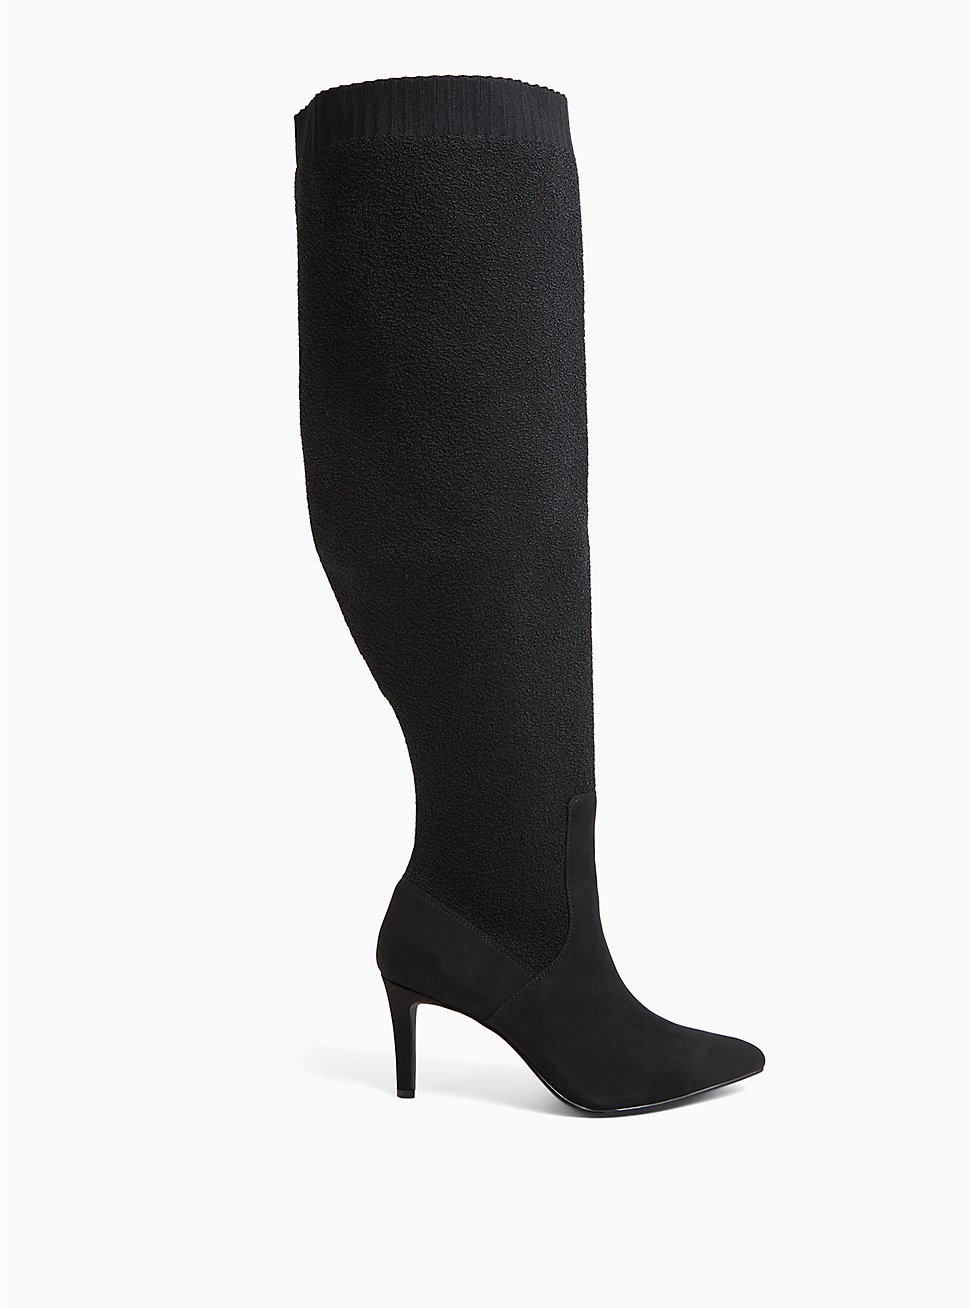 Black Stretch Over-The-Knee Boot (WW), BLACK, hi-res